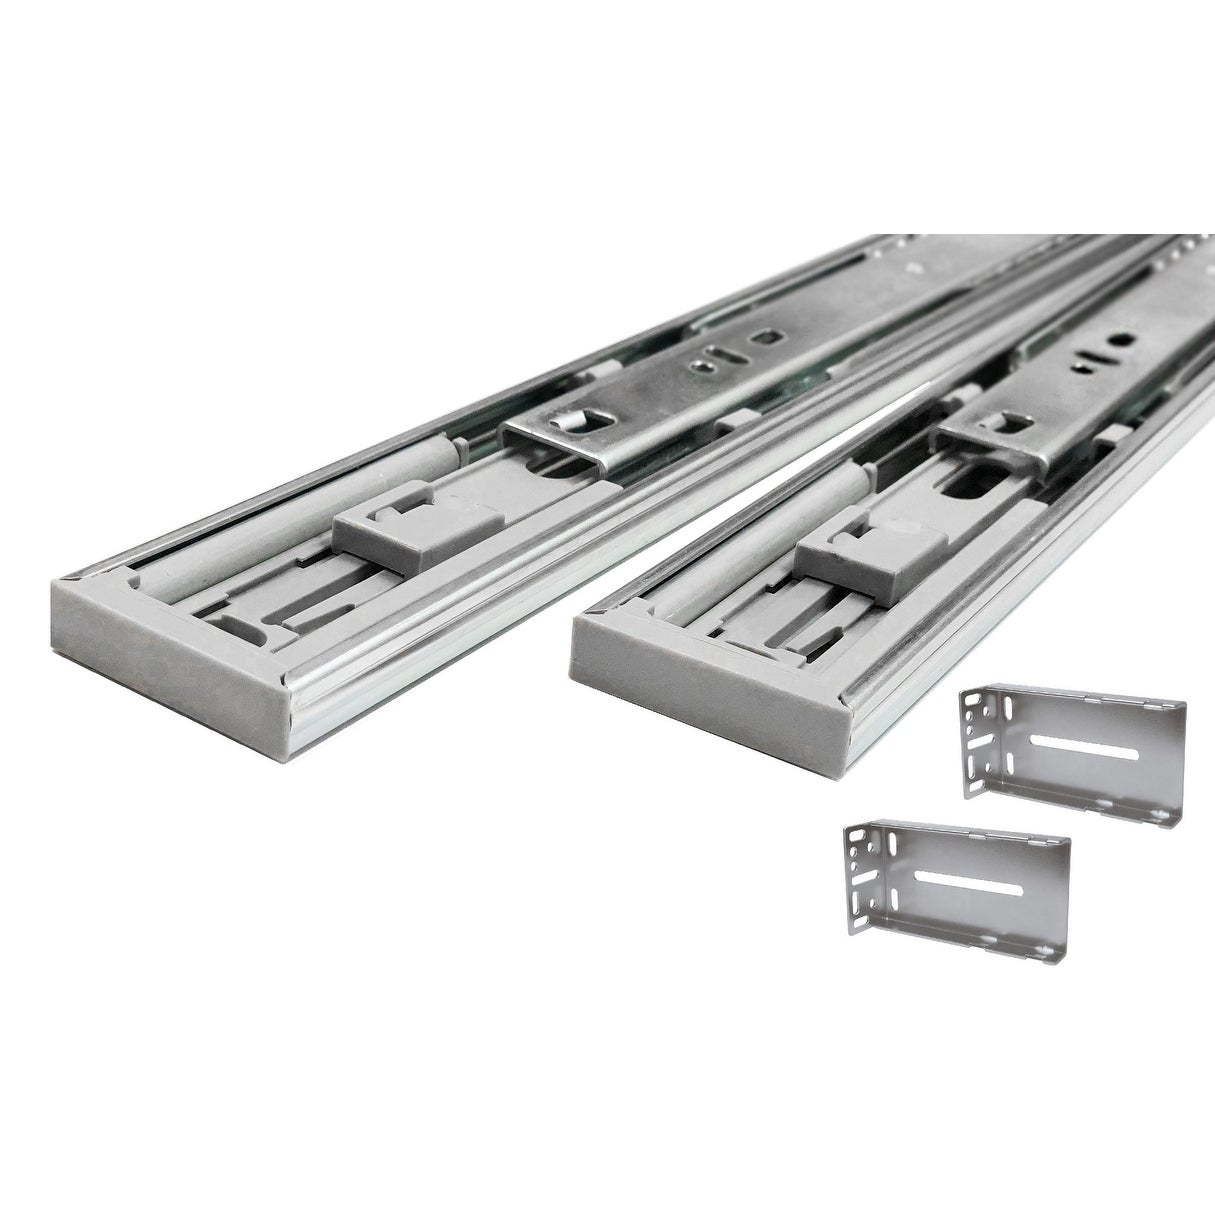 Shop Black Friday Deals On Hydraulic Soft Close 22 Inch Full Extension Drawer Slides With Rear Mounting Brackets Pack Of 1 Pair Overstock 26445181